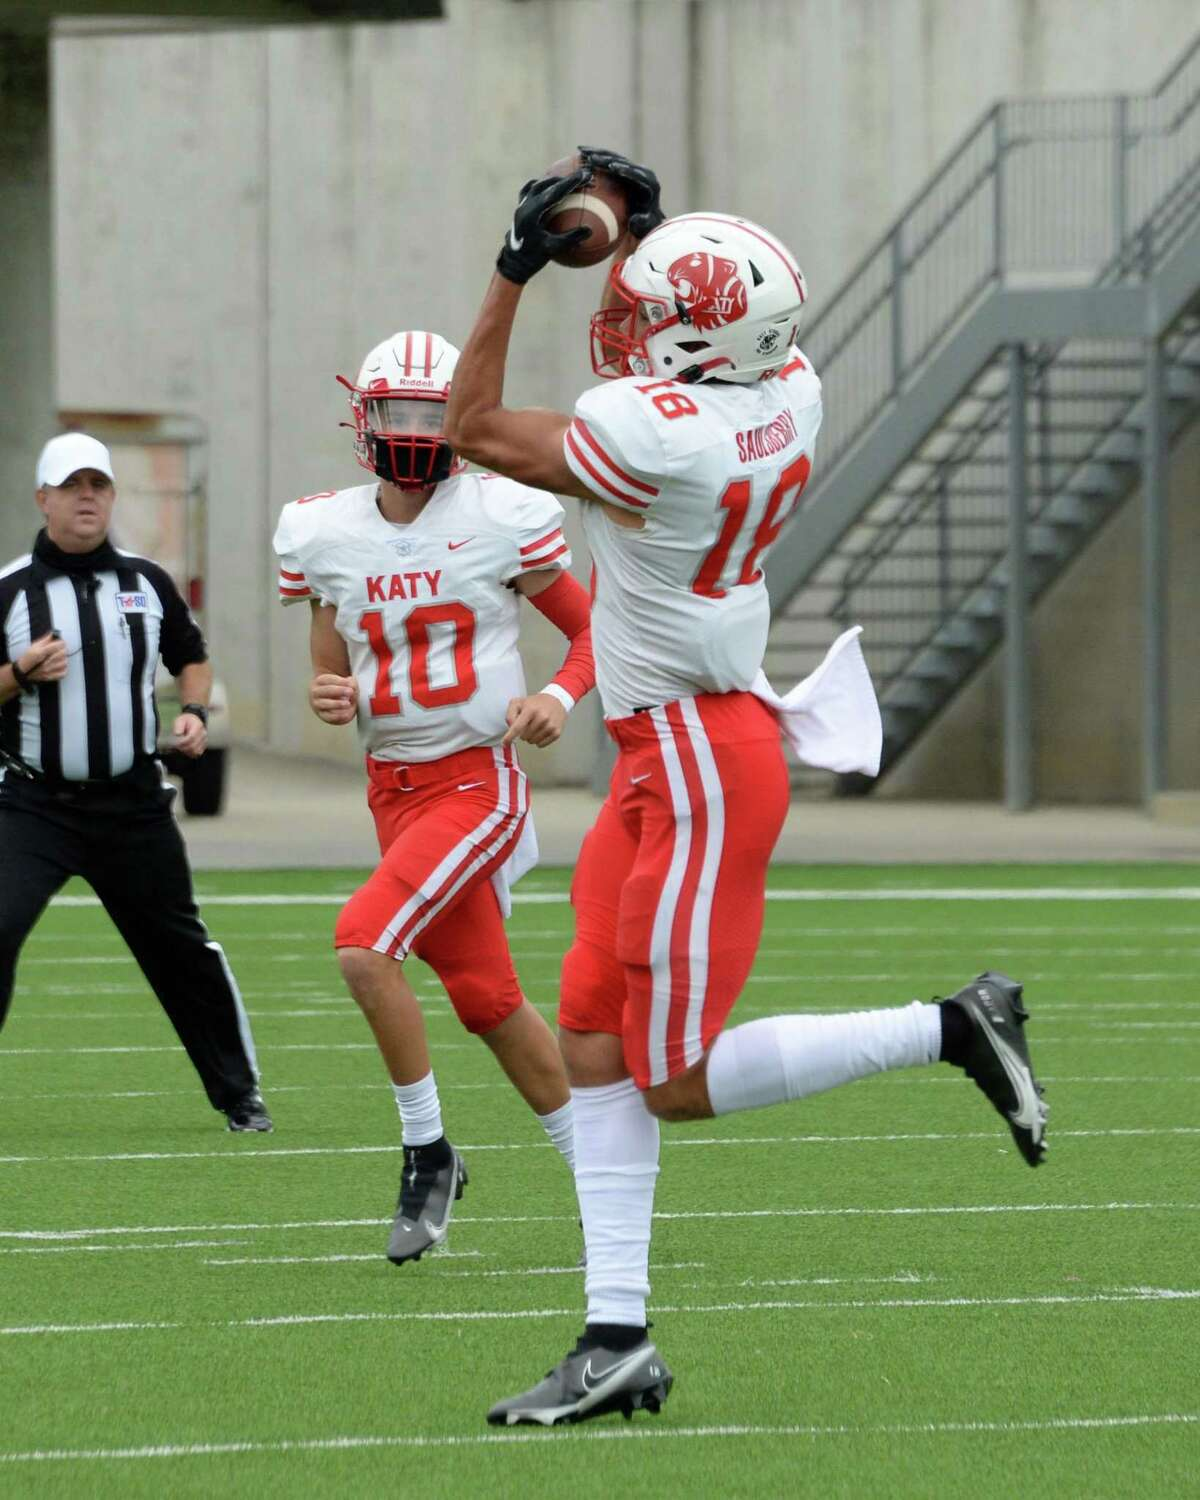 Taylor Saulsberry (18) of Katy catches a pass from Caleb Koger (10) and scores a touchdown during the second quarter of a 19-6A football game between the Cinco Ranch Cougars and the Katy Tigers on Saturday, October 24, 2020 at Legacy Stadium, Katy, TX.